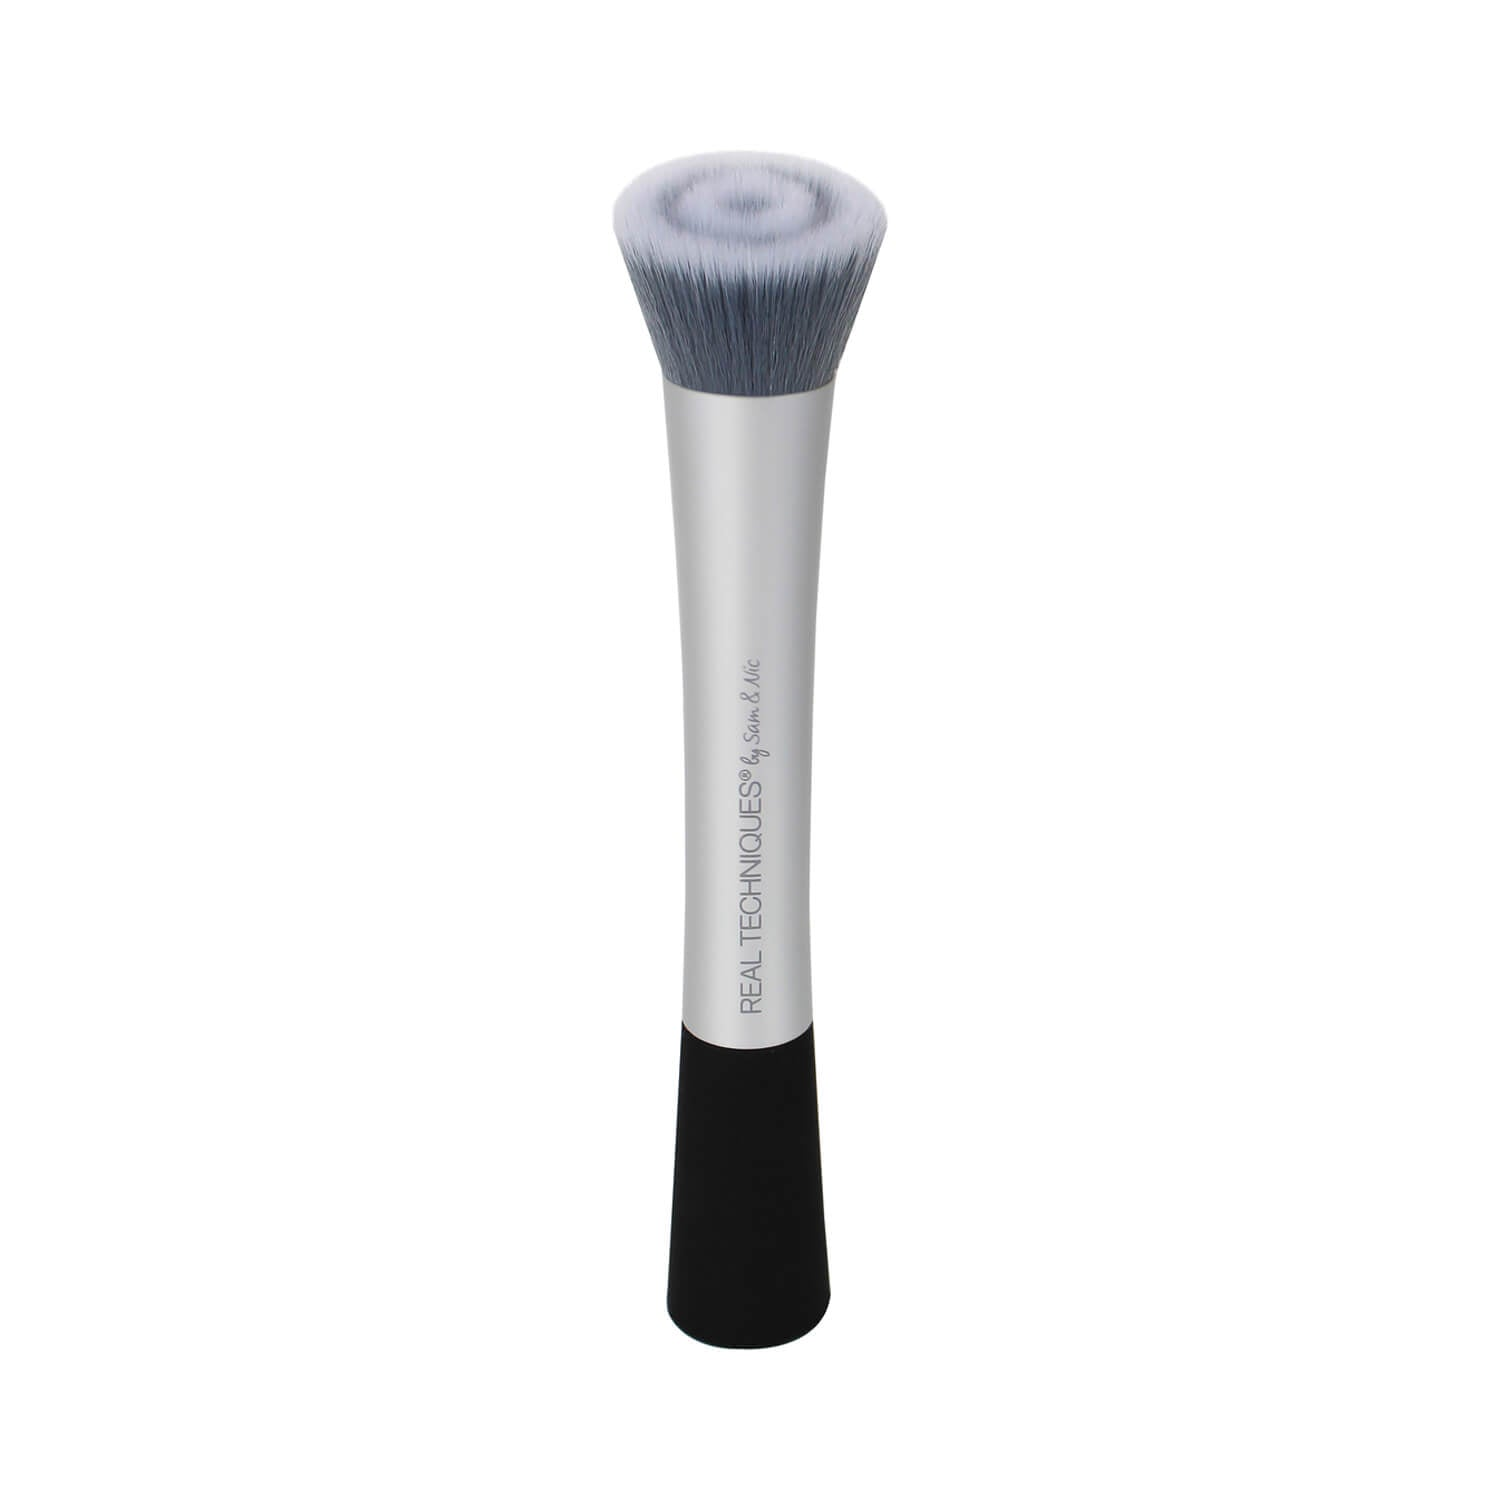 Real Techniques Complexion Blender Brush